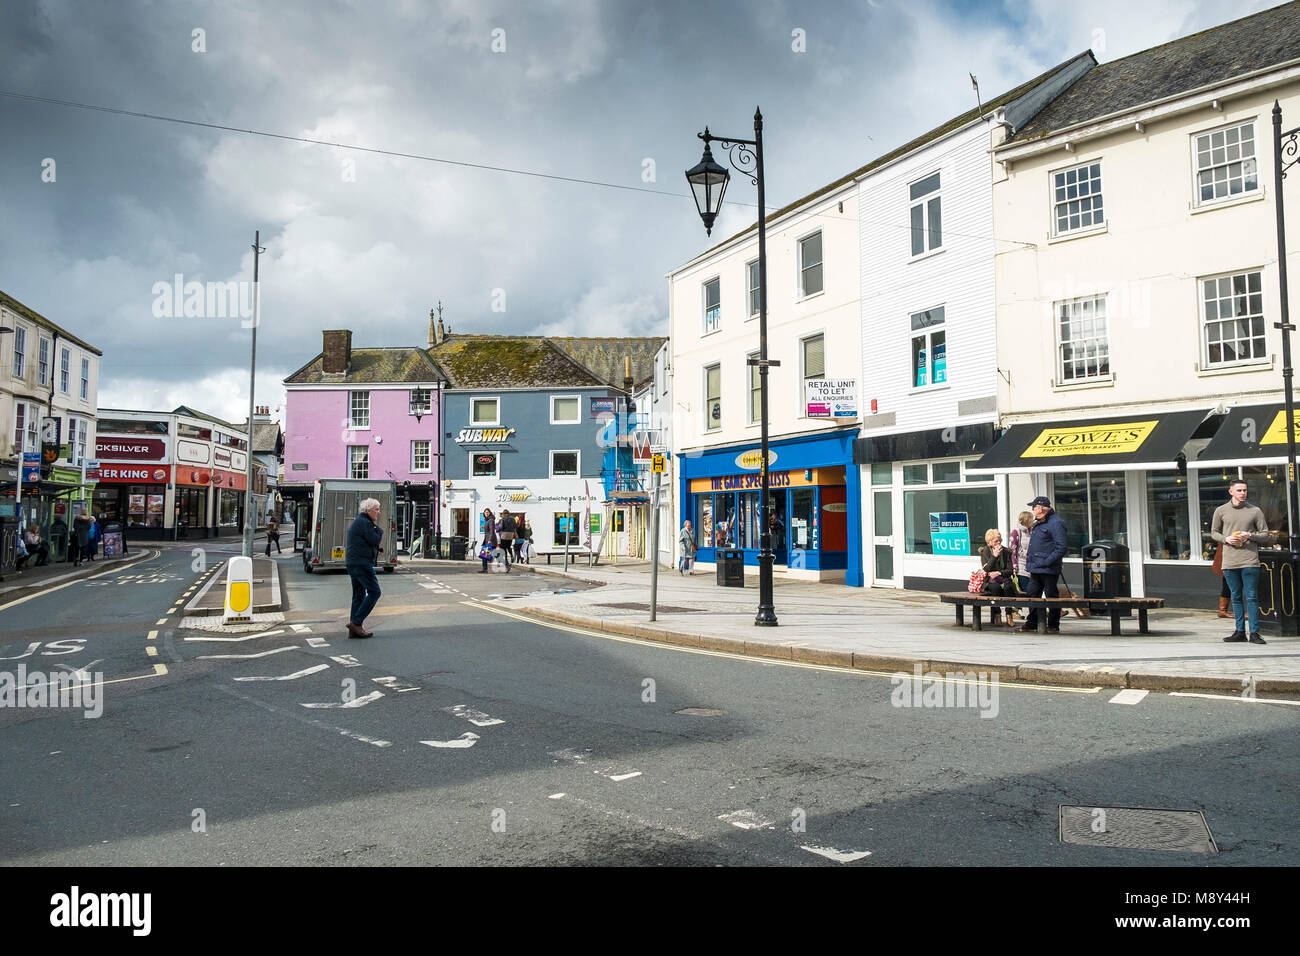 Shops and stores in Victoria Square in Truro City centre Cornwall. - Stock Image